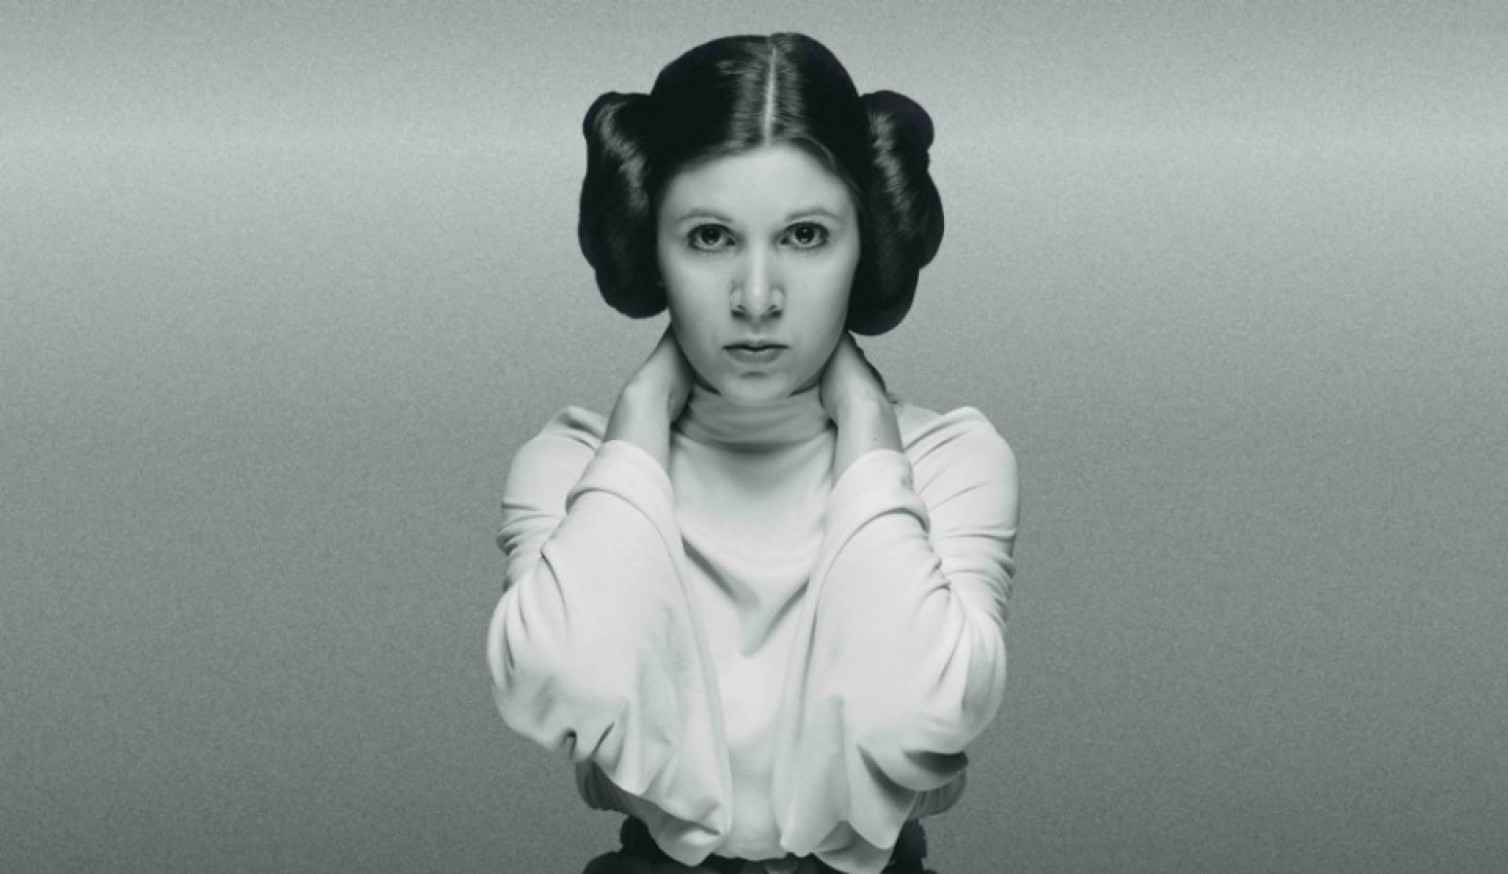 Muere Carrie Fisher, la princesa Leia de 'Star Wars'